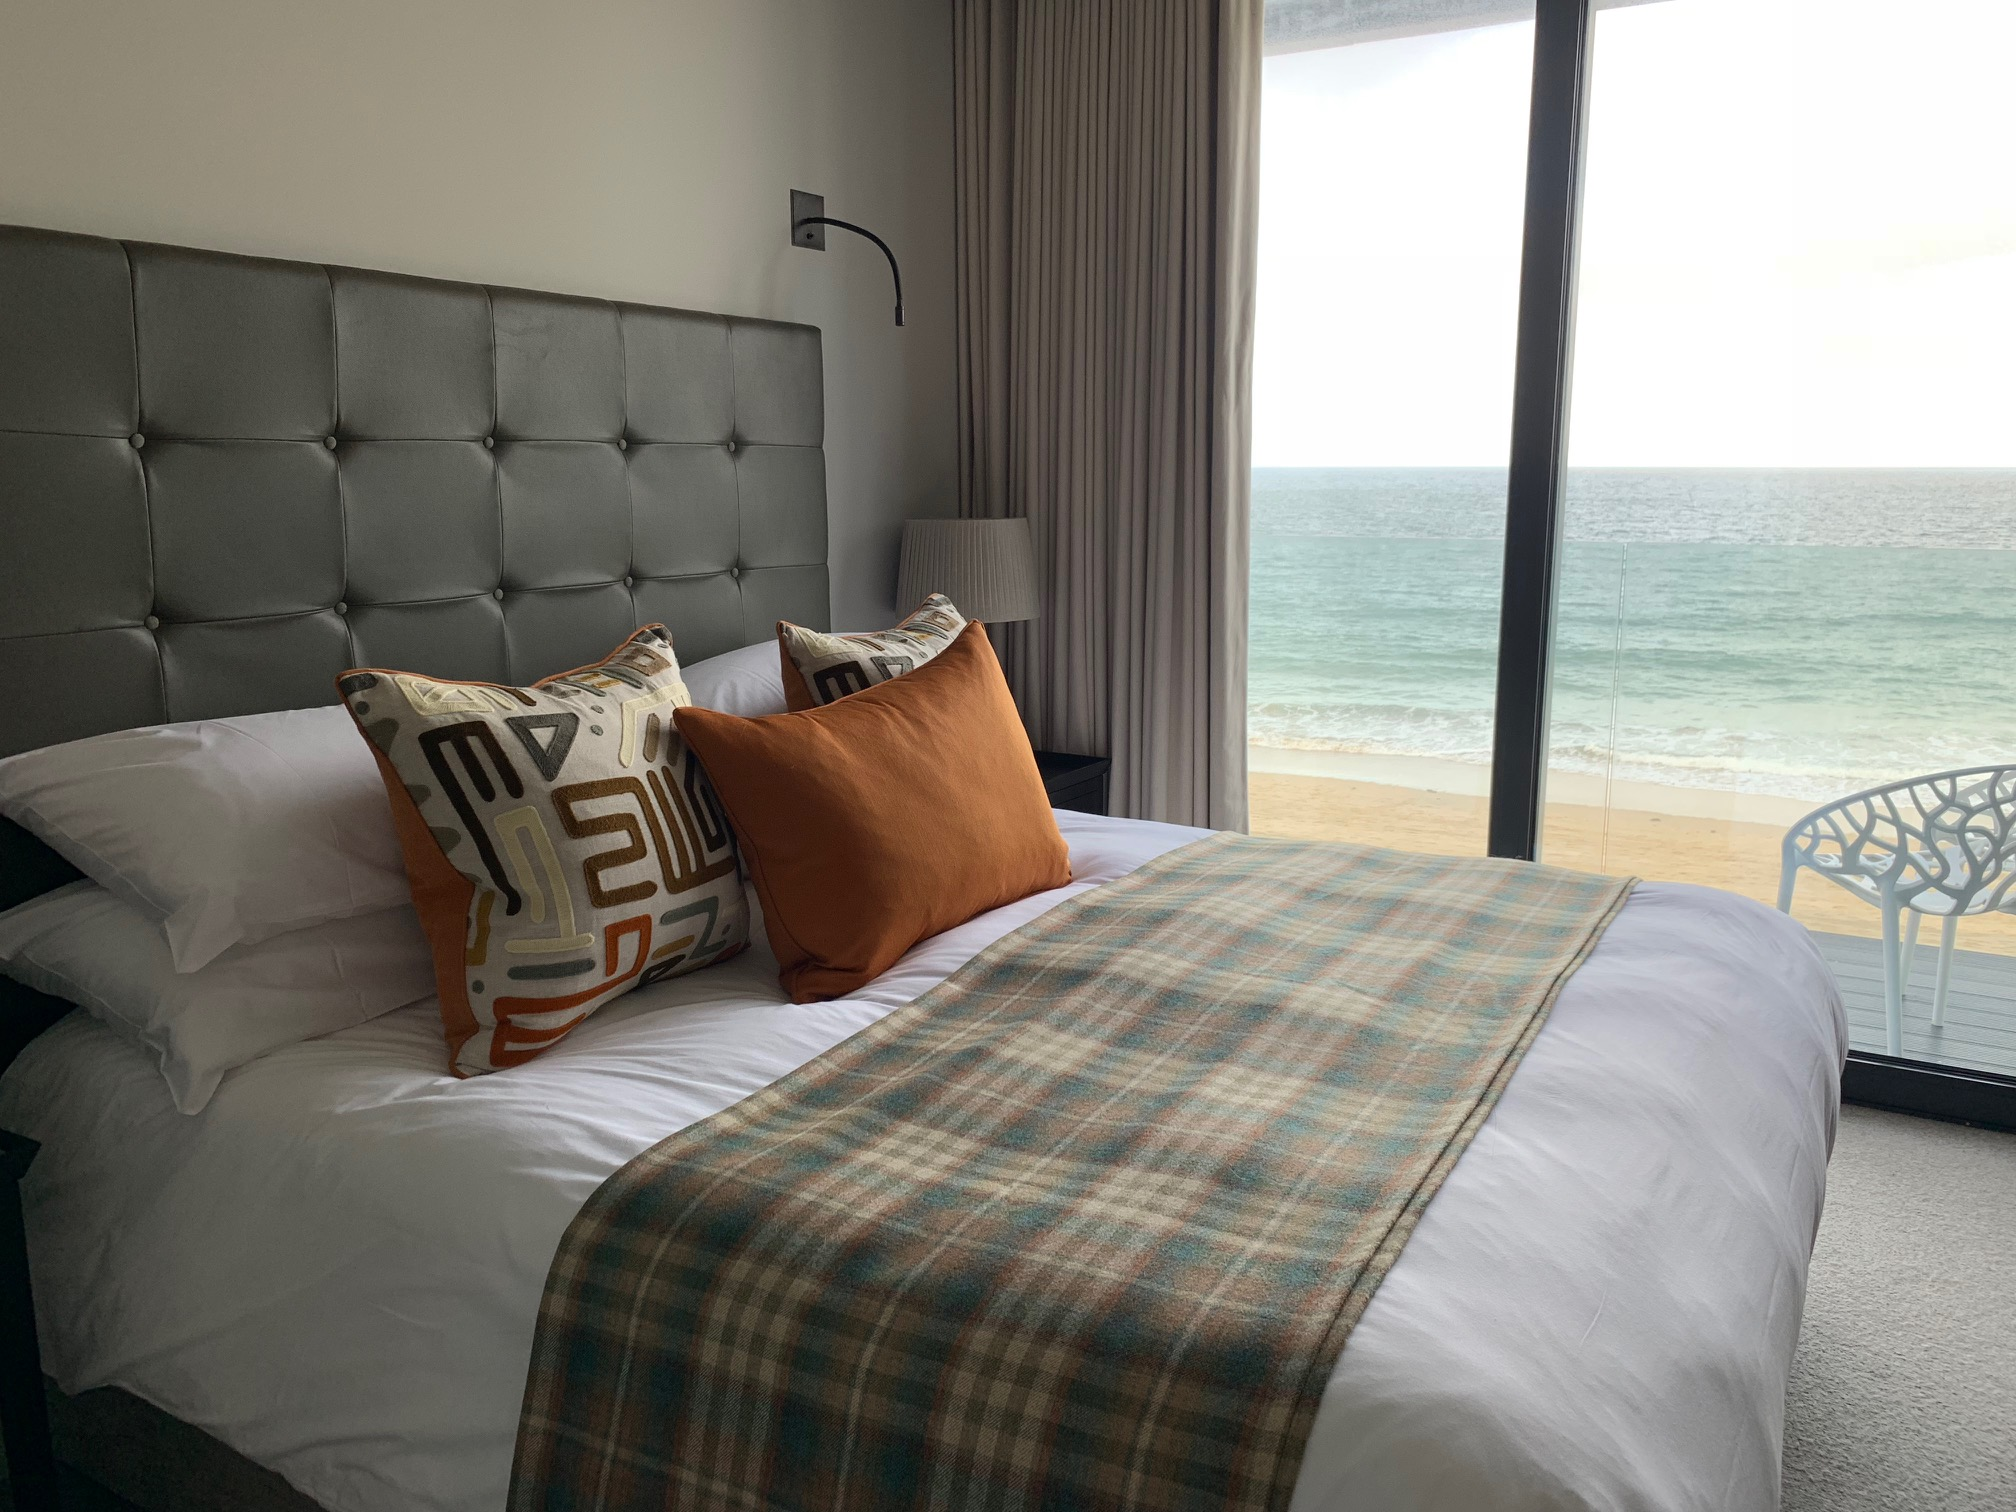 EXCLUSIVE: An inside look at the new £15m beach lodges at Carbis Bay Hotel